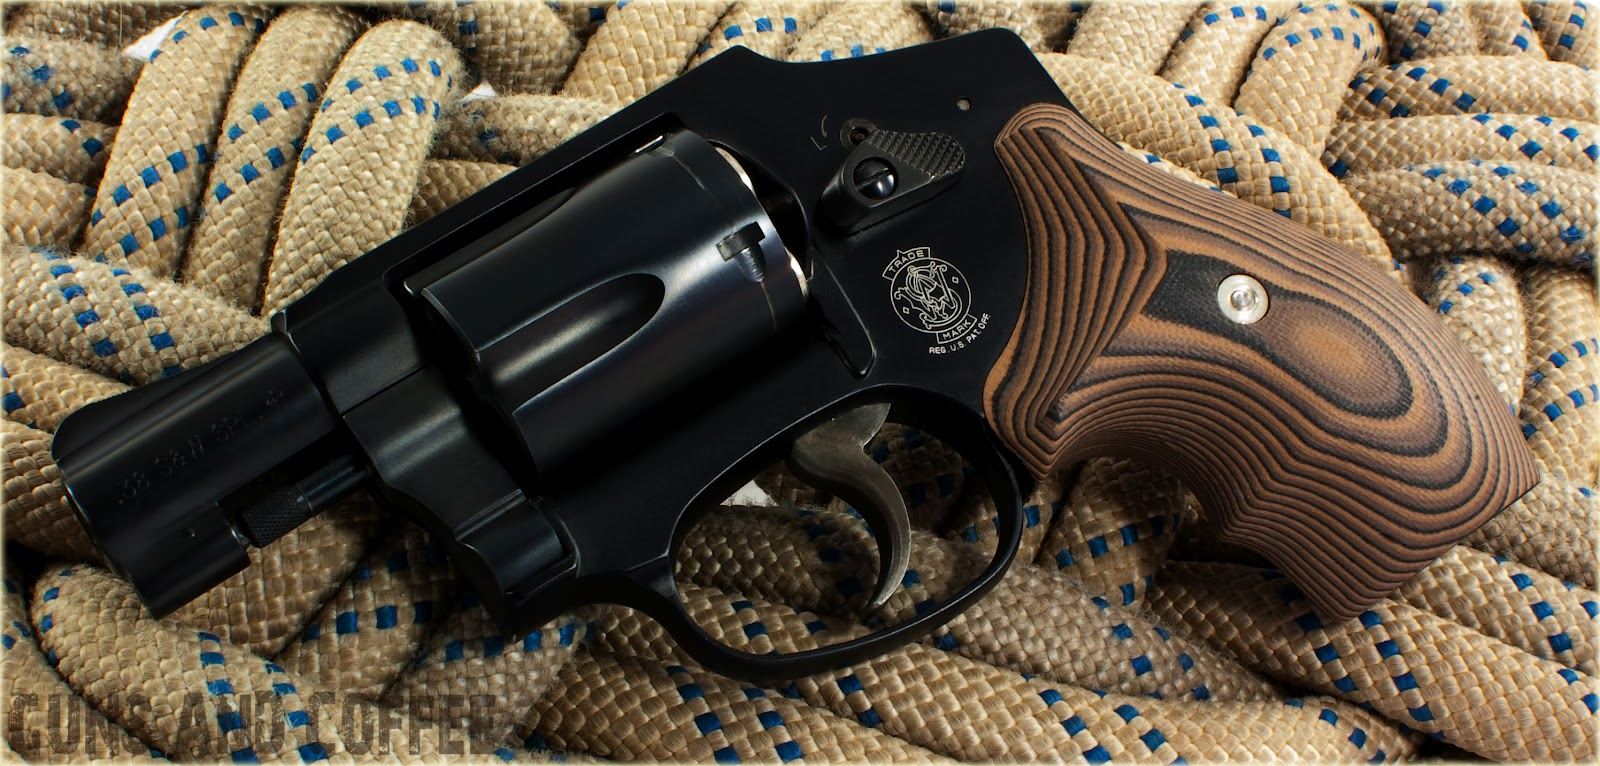 Guns & Coffee: Grip Therapy - OMG IT SPINS!! Edition